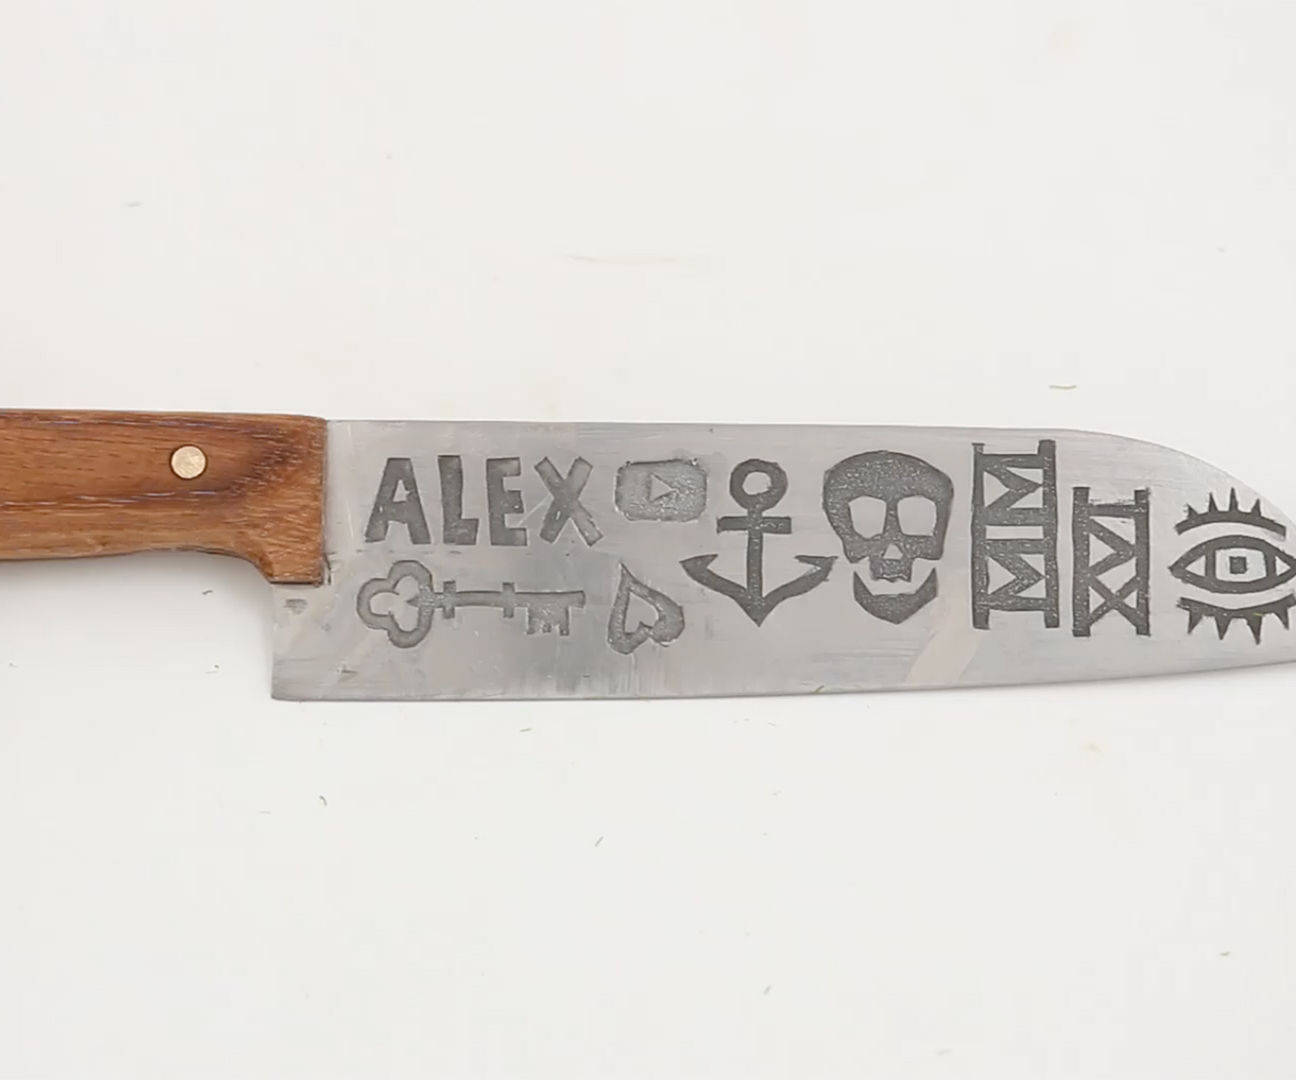 How To Tattoo a Knife Blade w/ (Proper) Metal Etching